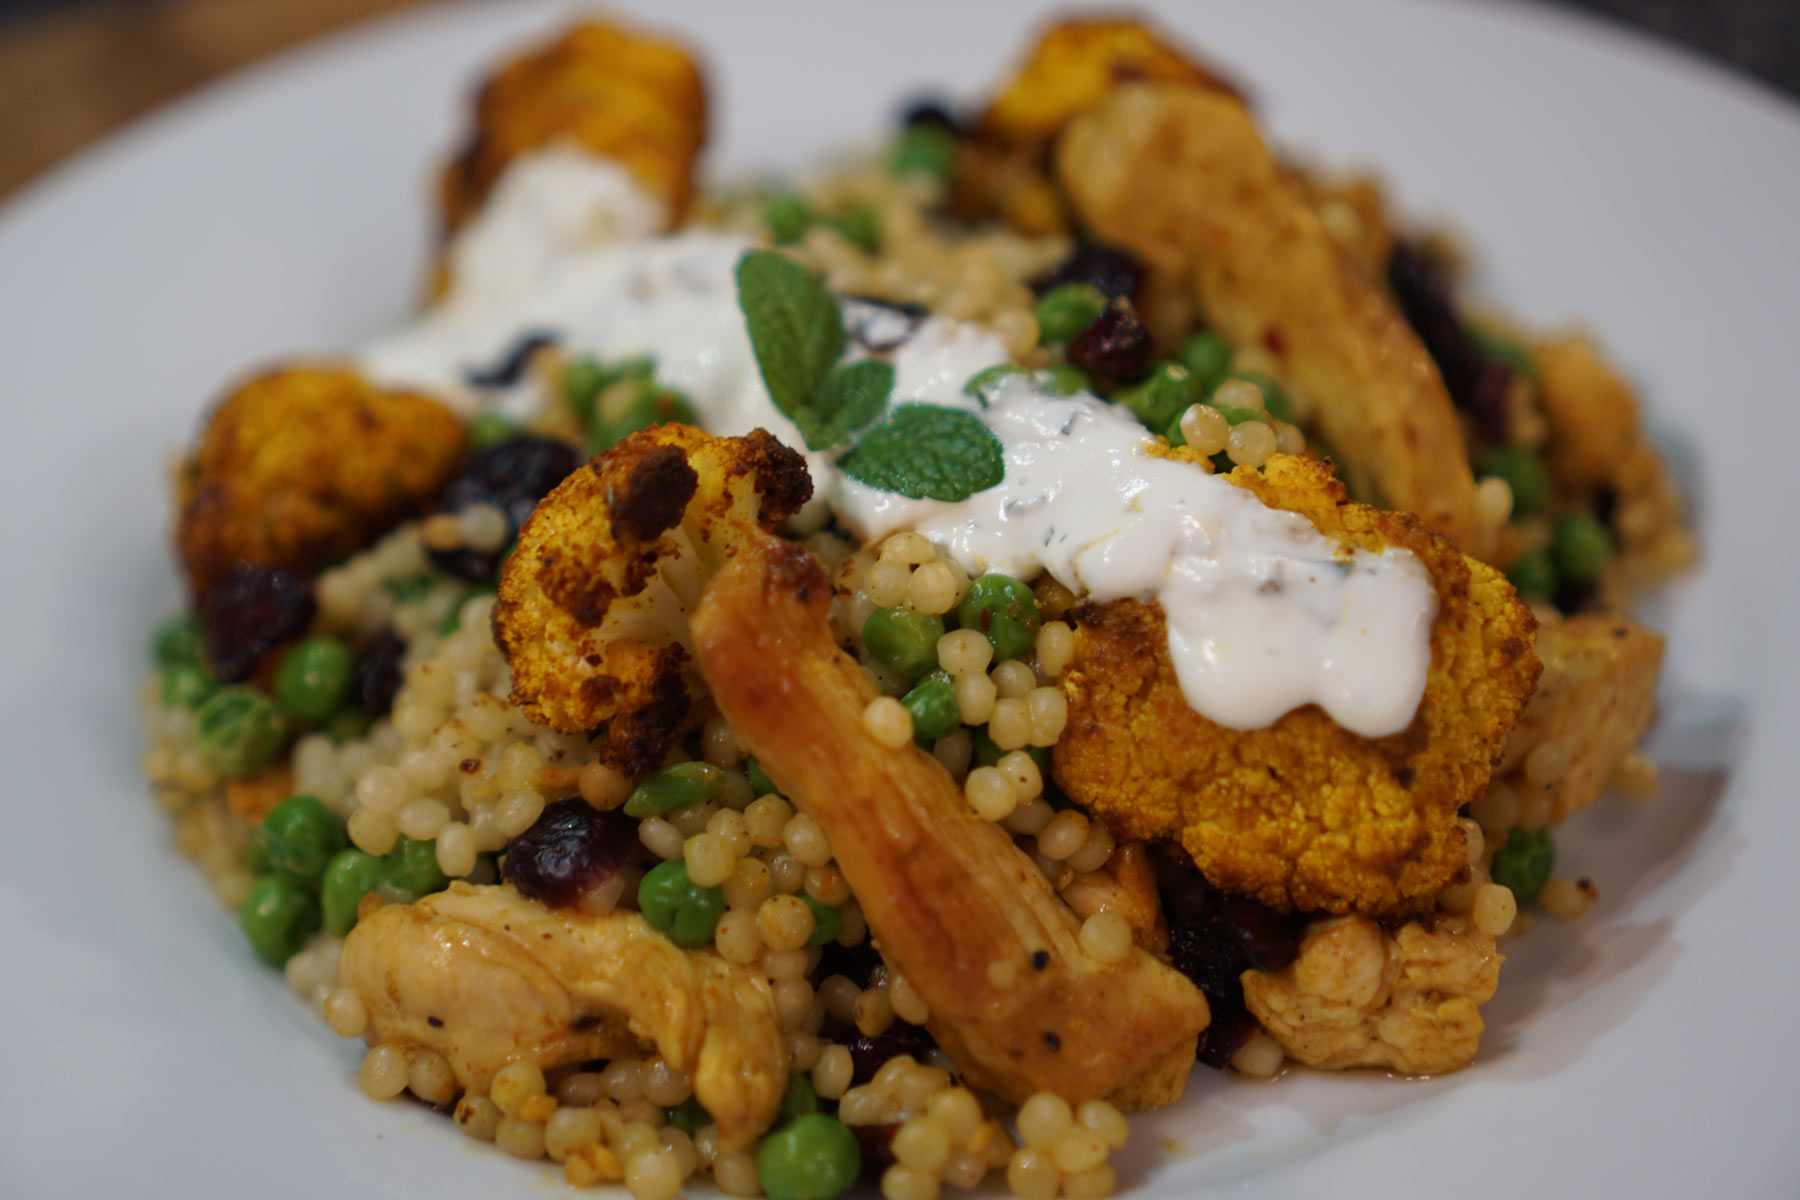 Moroccan Chicken With Minted Yoghurt